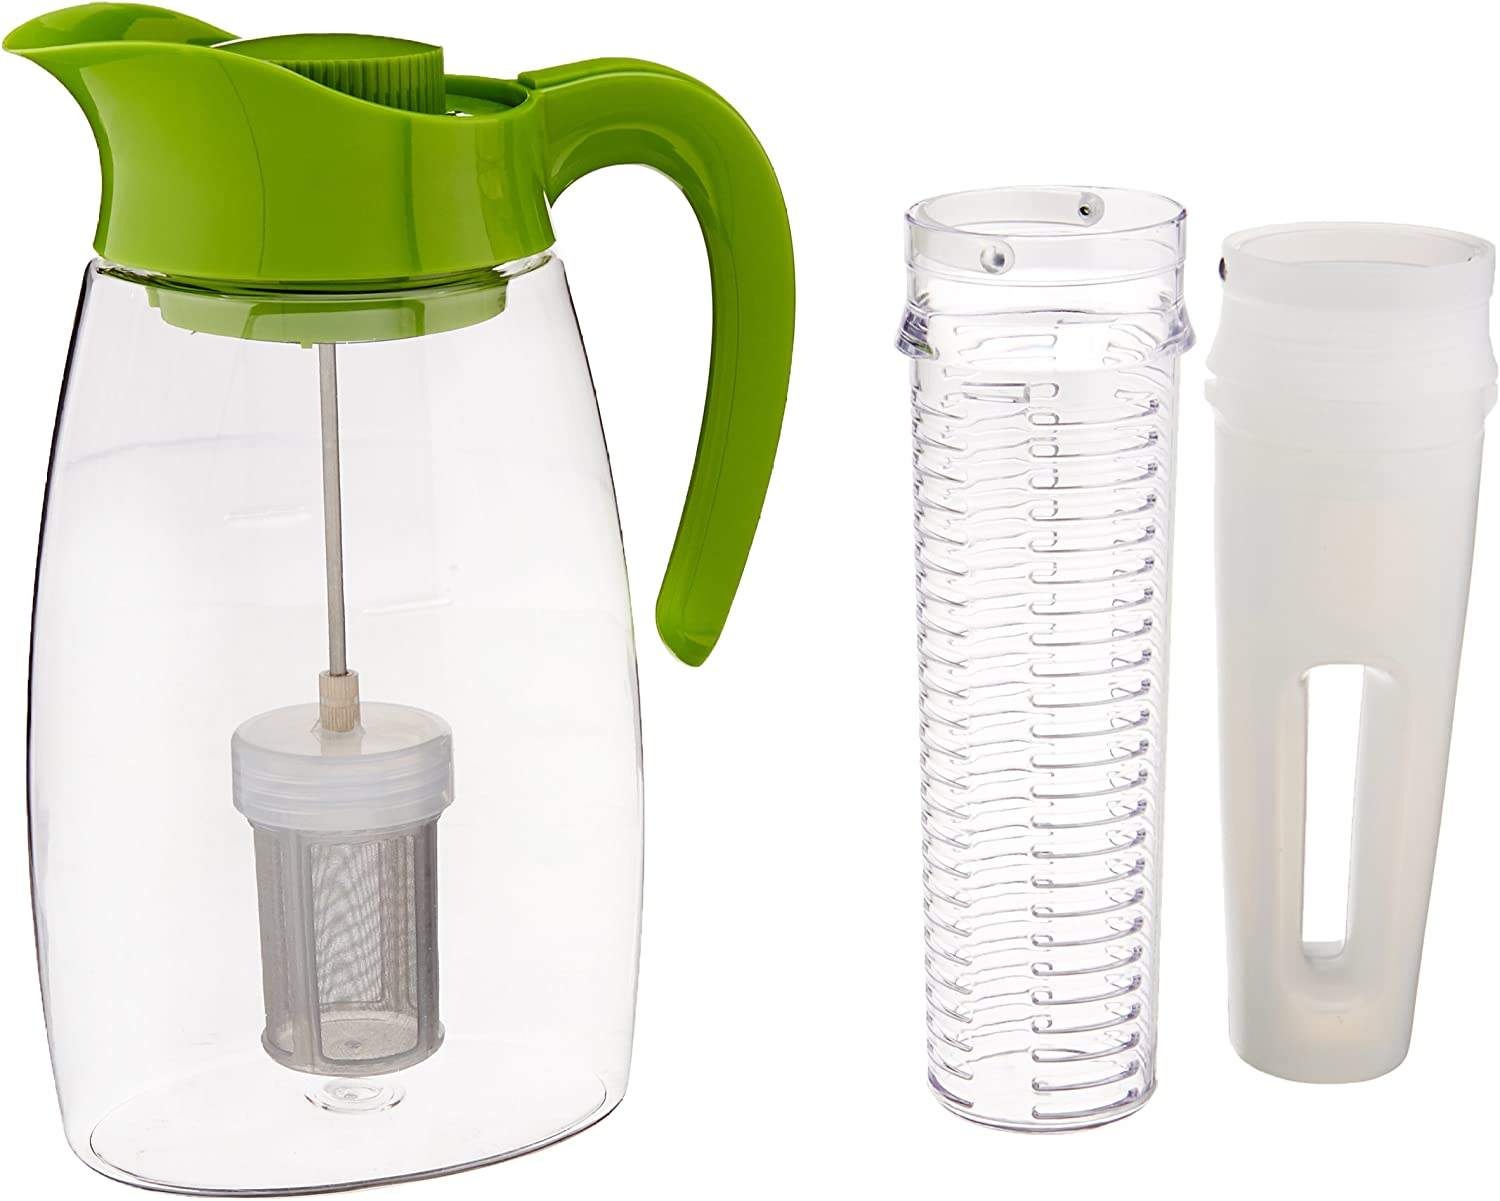 Primula Flavor-It Beverage System – Includes Fruit Infusion Core, Tea Infusion Core, and Chill Core – Dishwasher Safe – 2.9 Qt. – Green